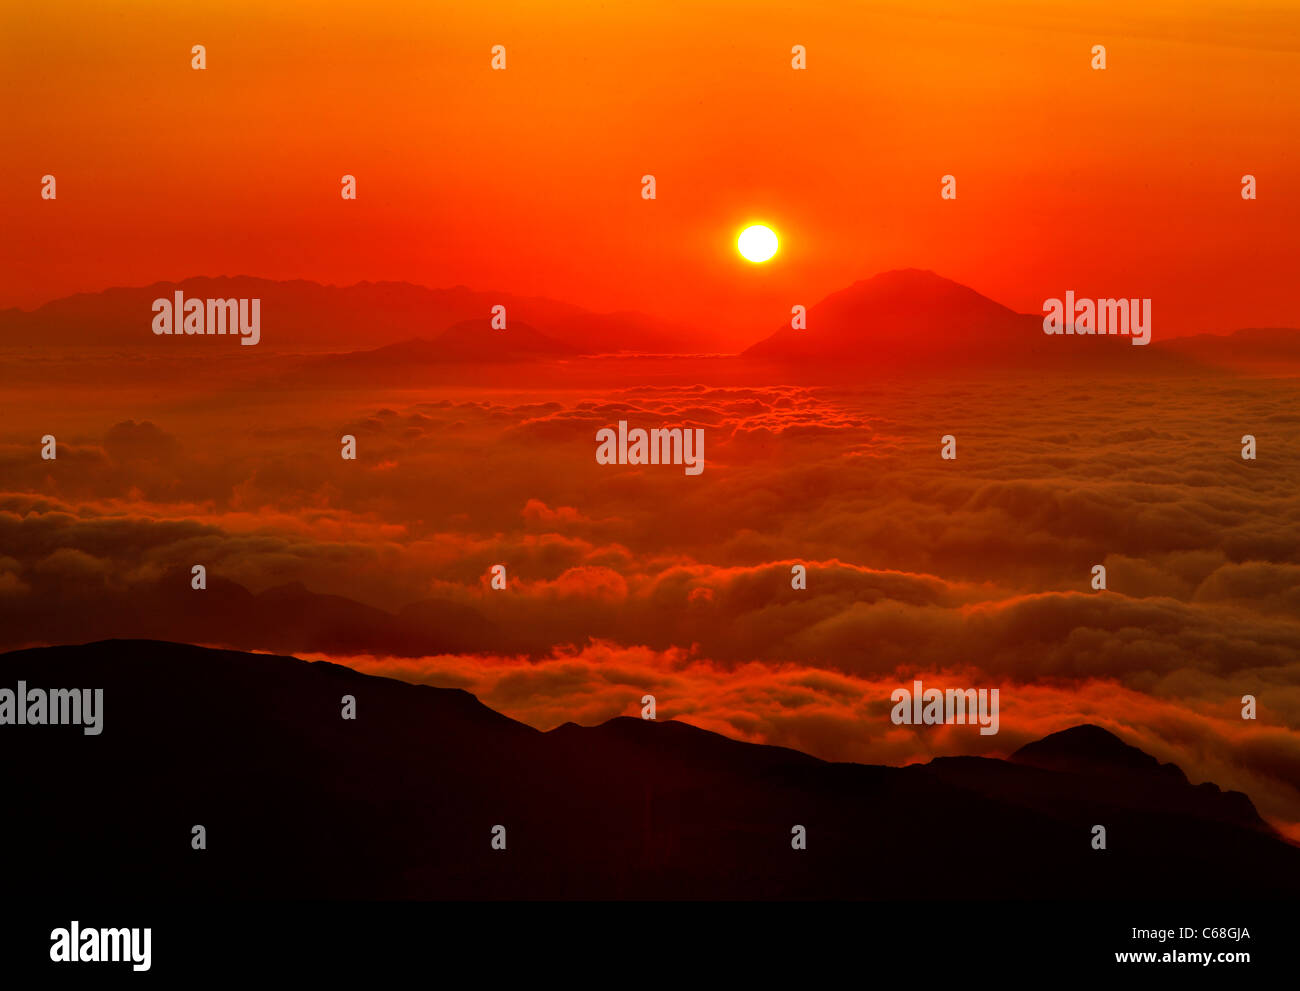 Sun setting above a sea of clouds. Photo taken from mount Kofinas the highest peak of Asterousia mountain range, Stock Photo